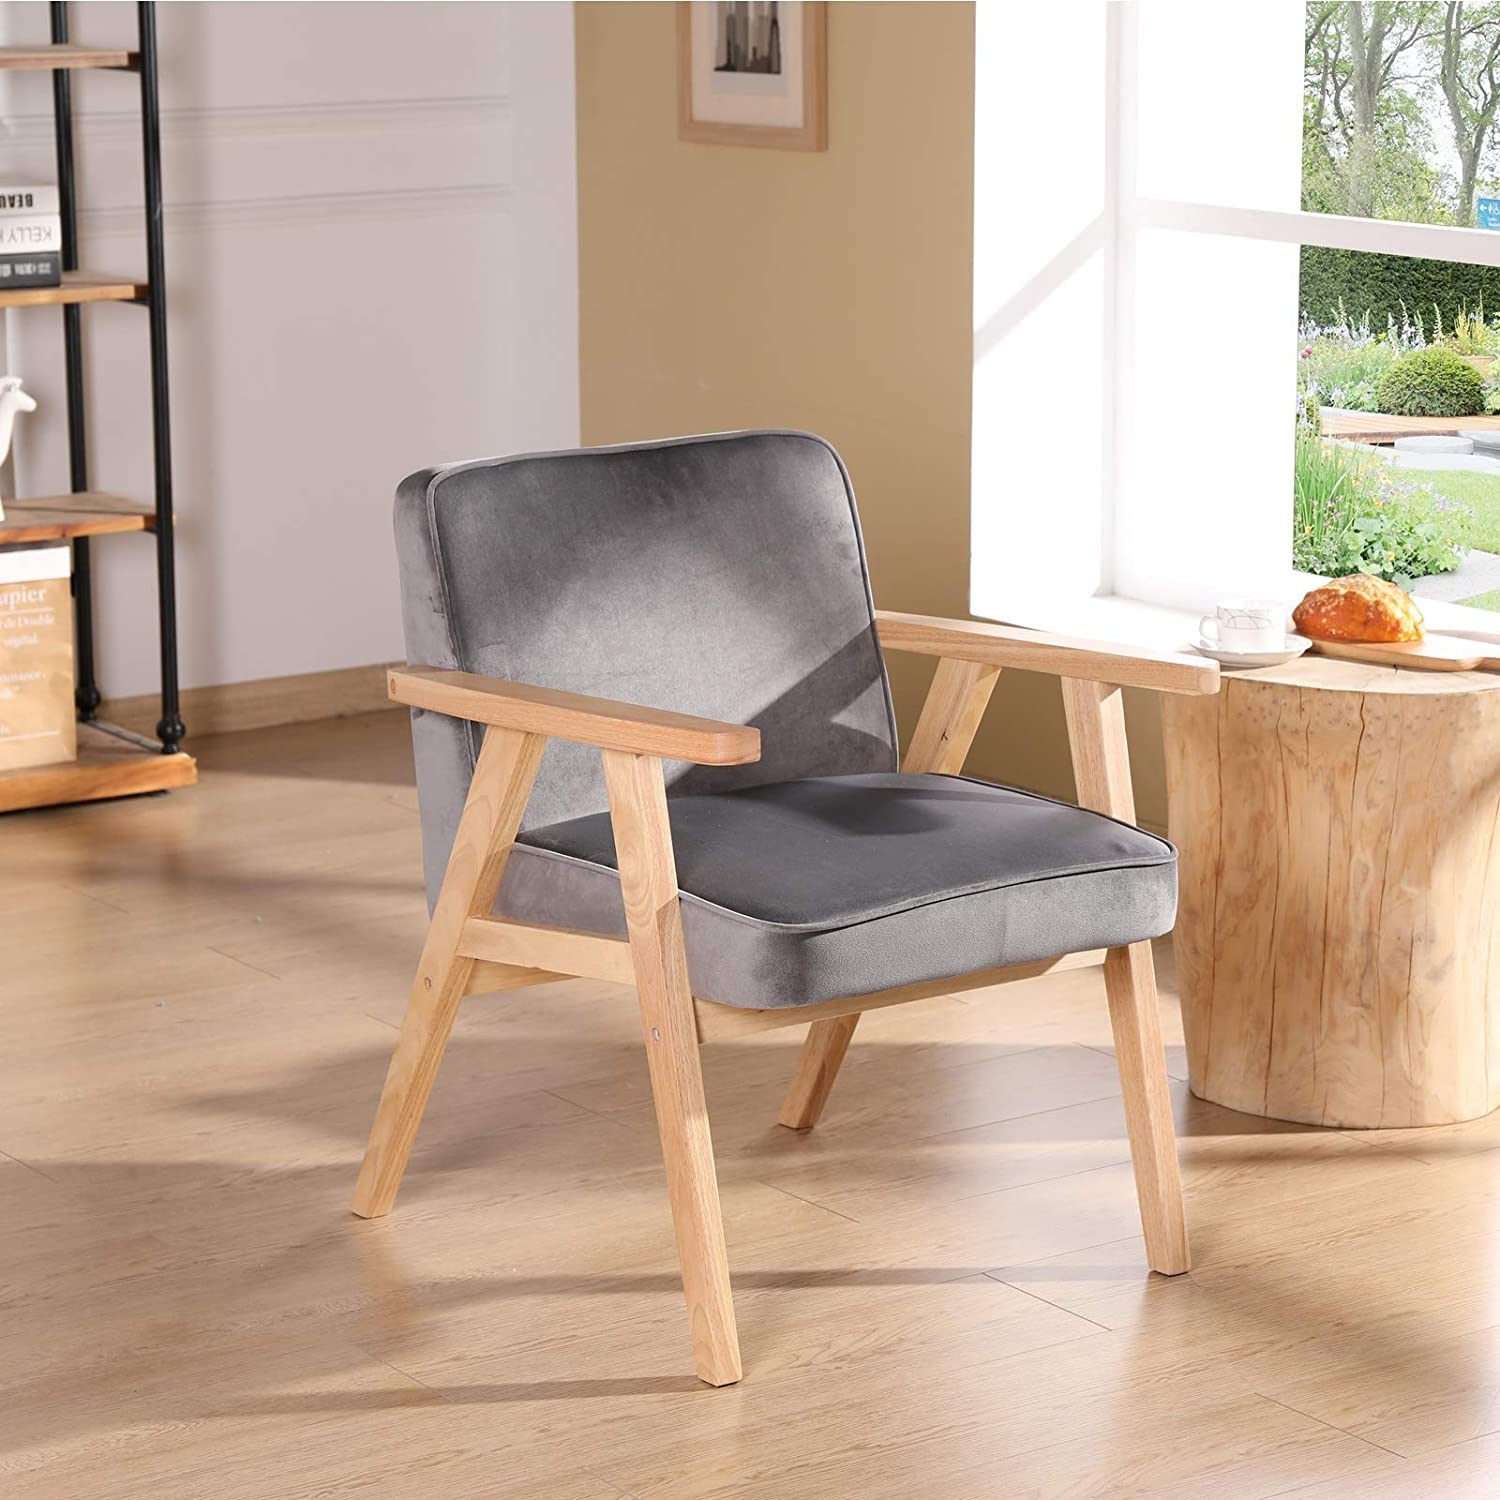 for Living Room Mid-Century Armchair with Espresso Wood Frames Faux Leather Upholstered Farmhouse Nursery Chair Bedroom Grey